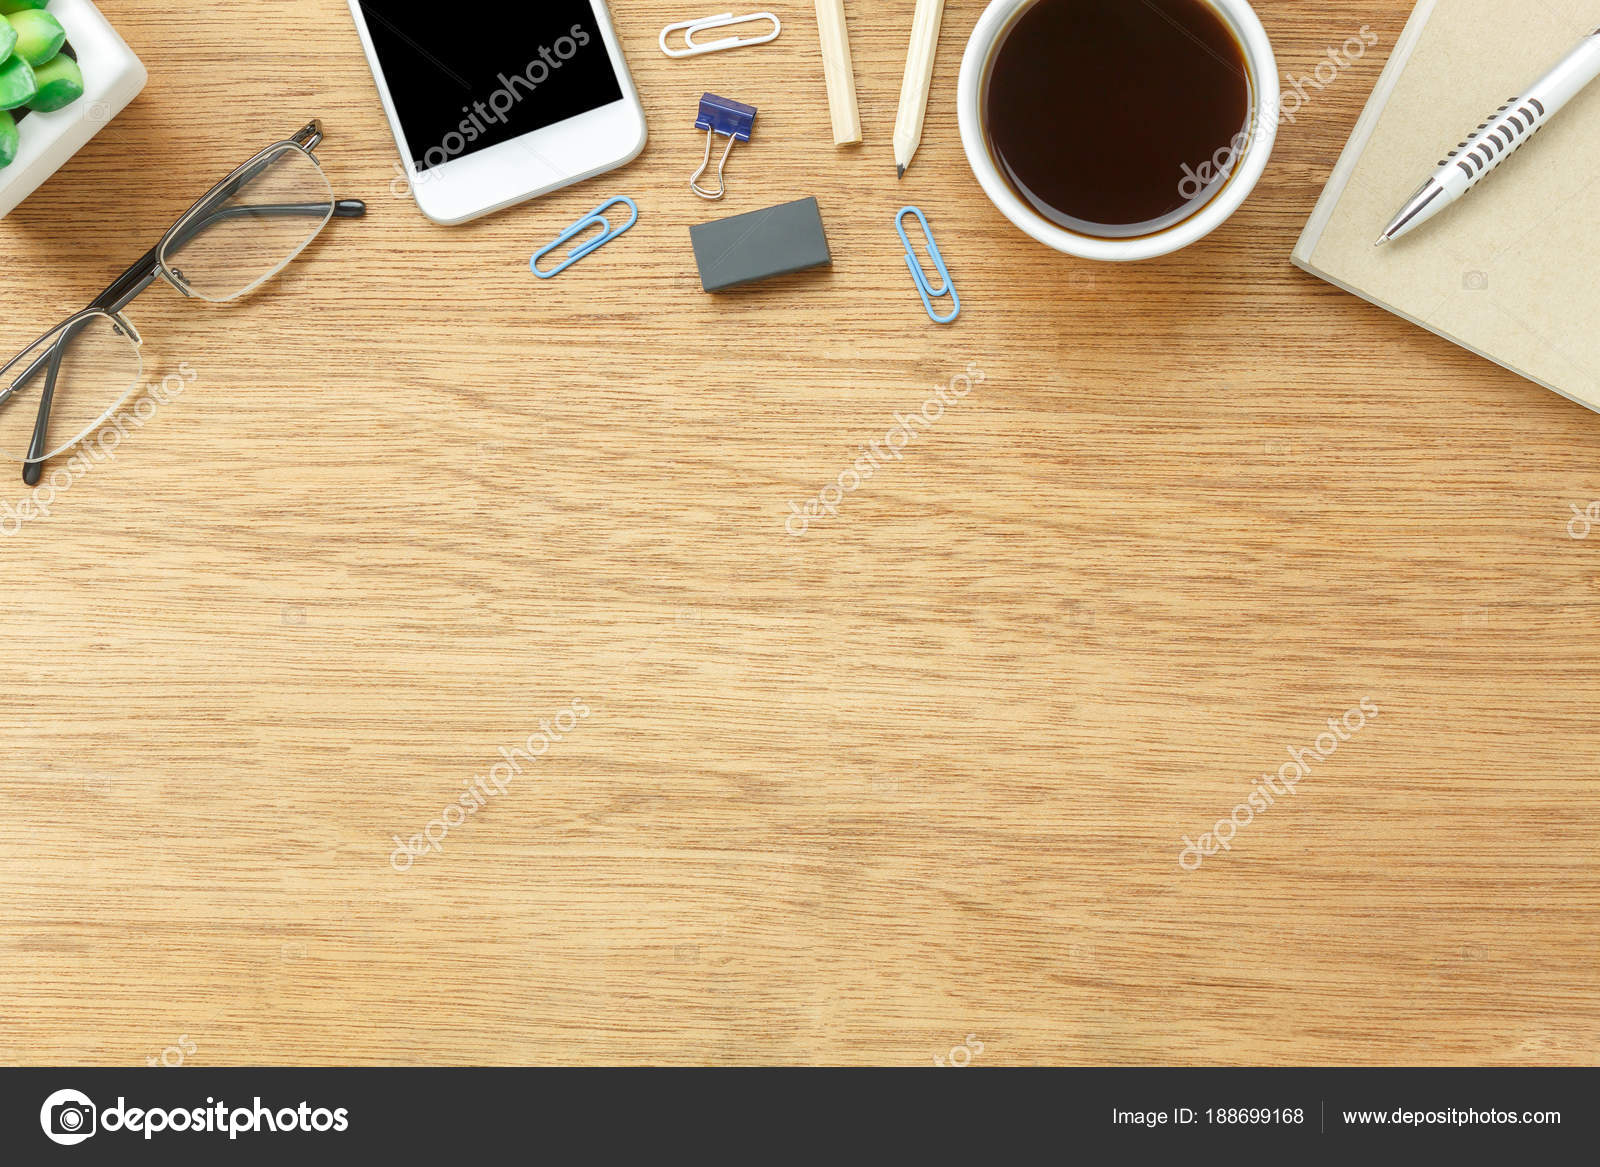 Charmant Table Top View Aerial Image Stationary On Office Desk Background  Concept.Flat Lay Objects The Cup Of Coffee With Essential Accessory.